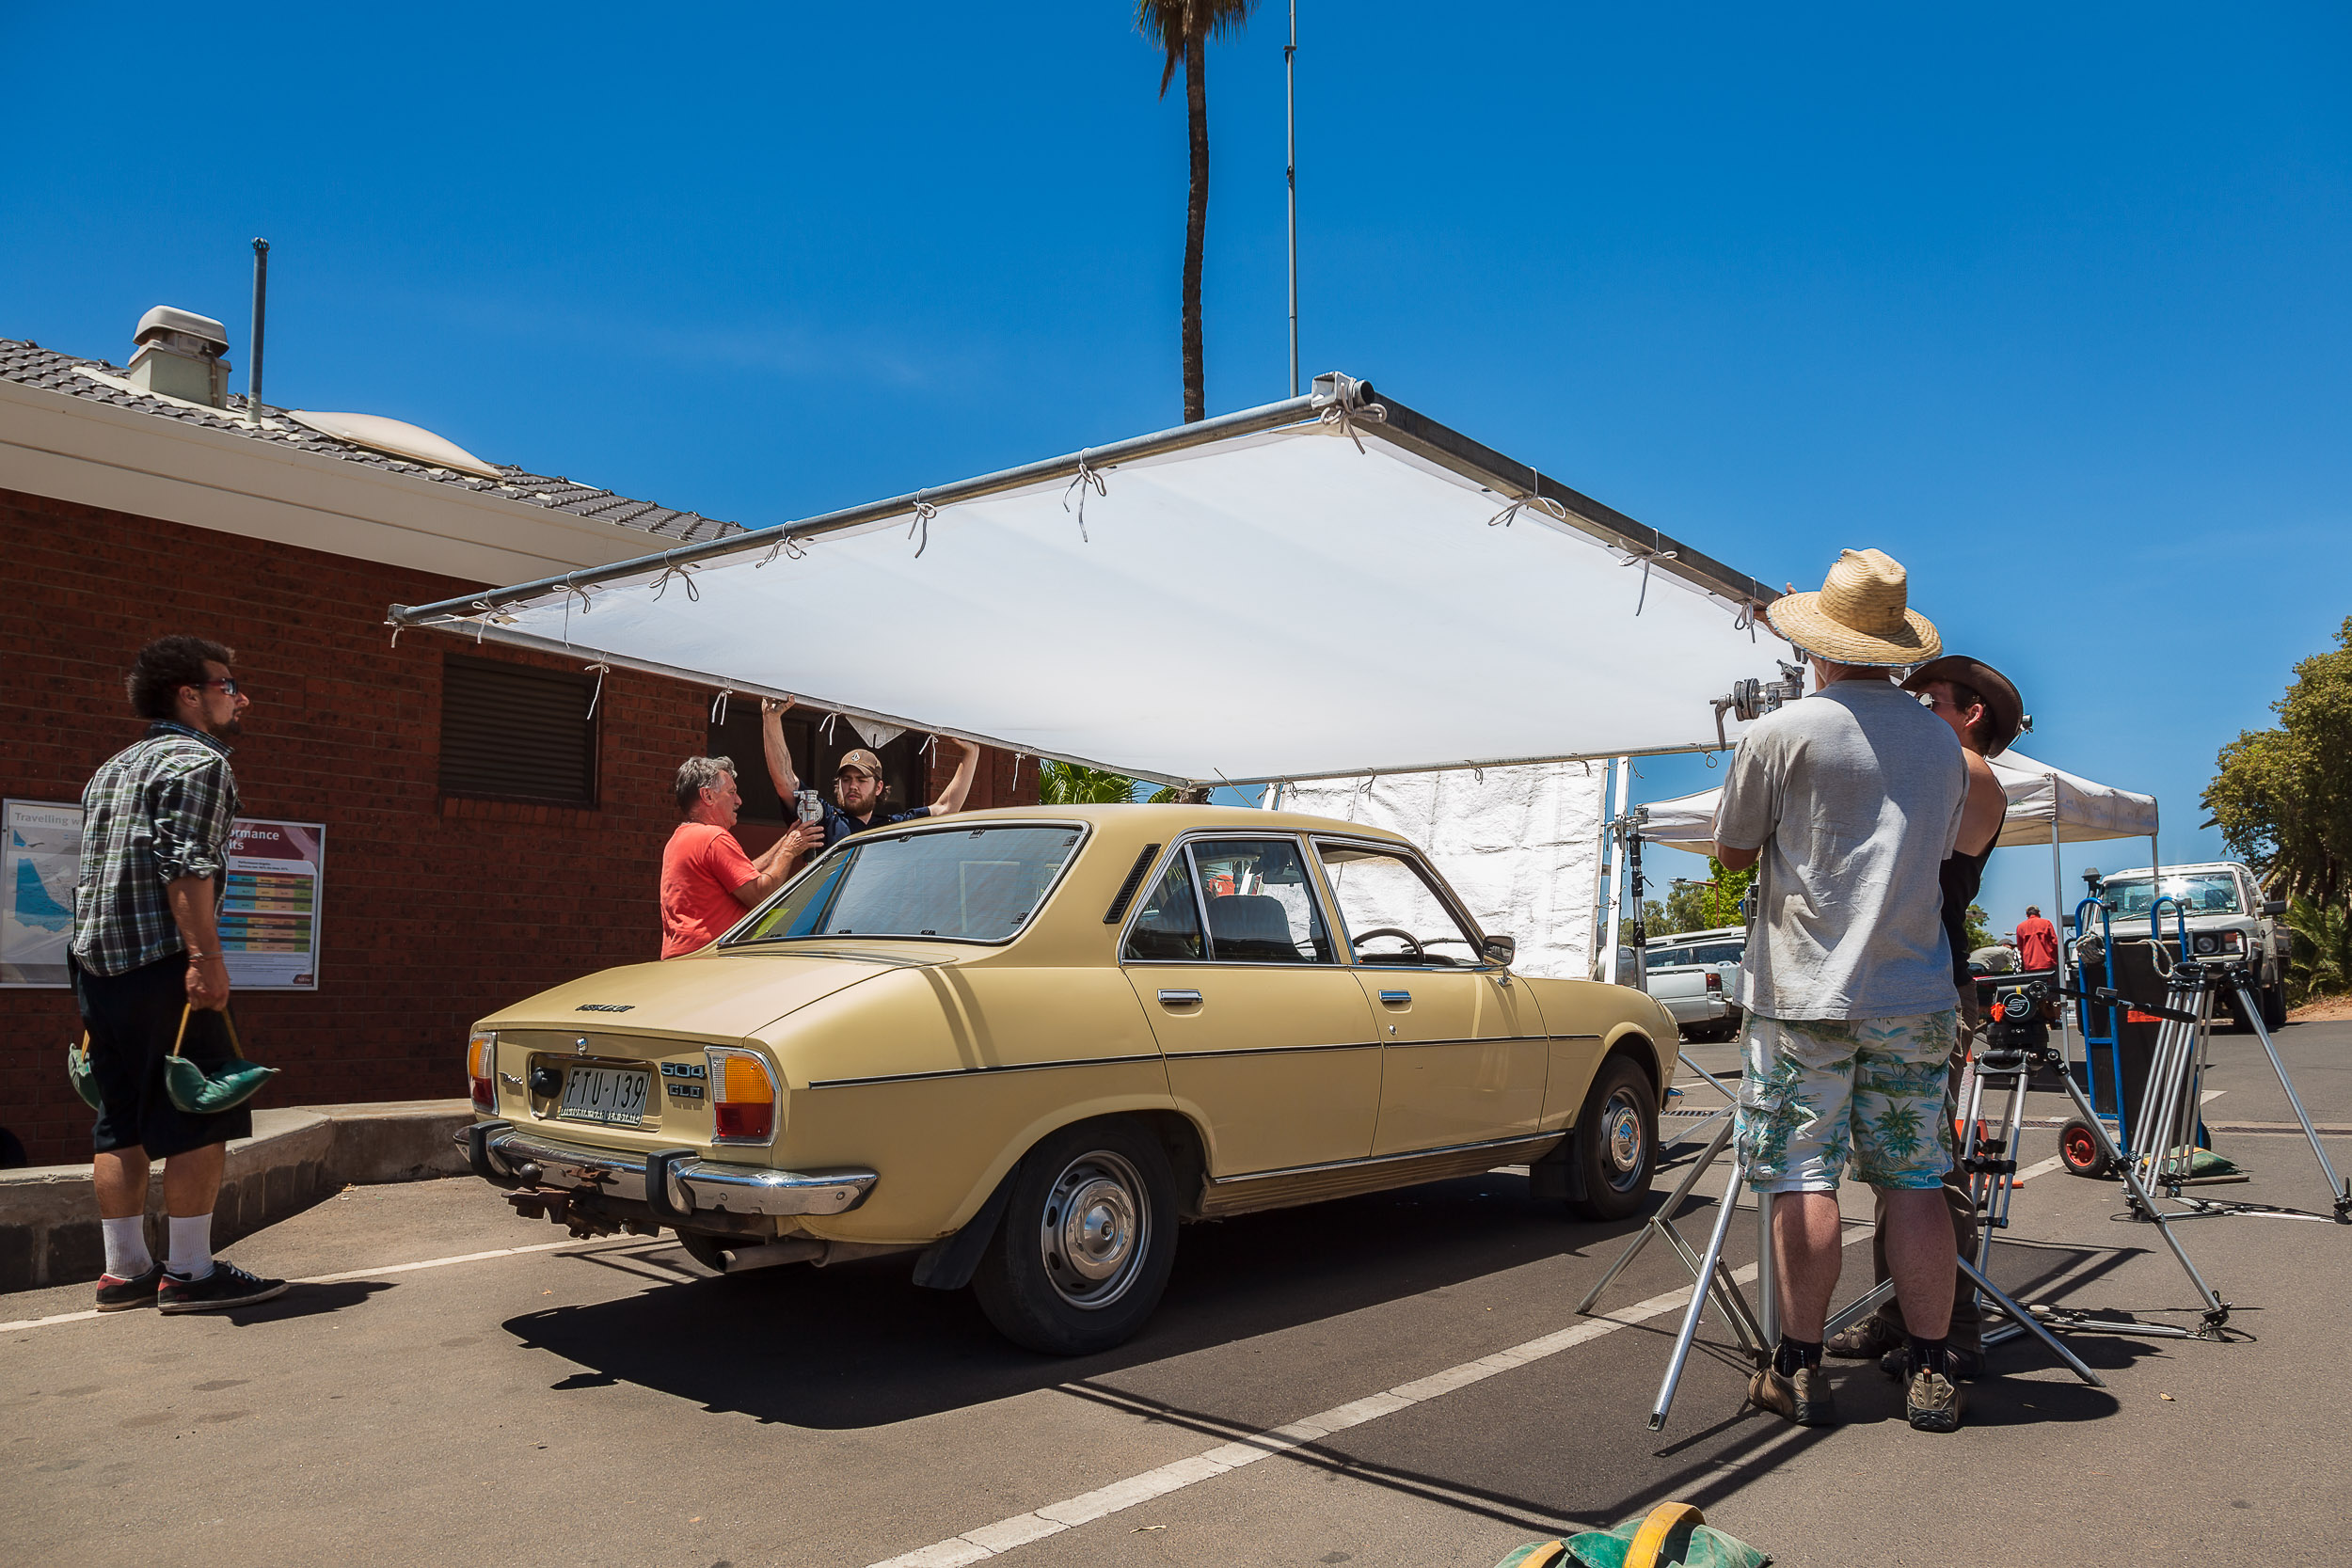 Film crew  setting up for a scene outside the  Mildura Railway Station  during the filming of the Australian motion picture film  Summer Coda .